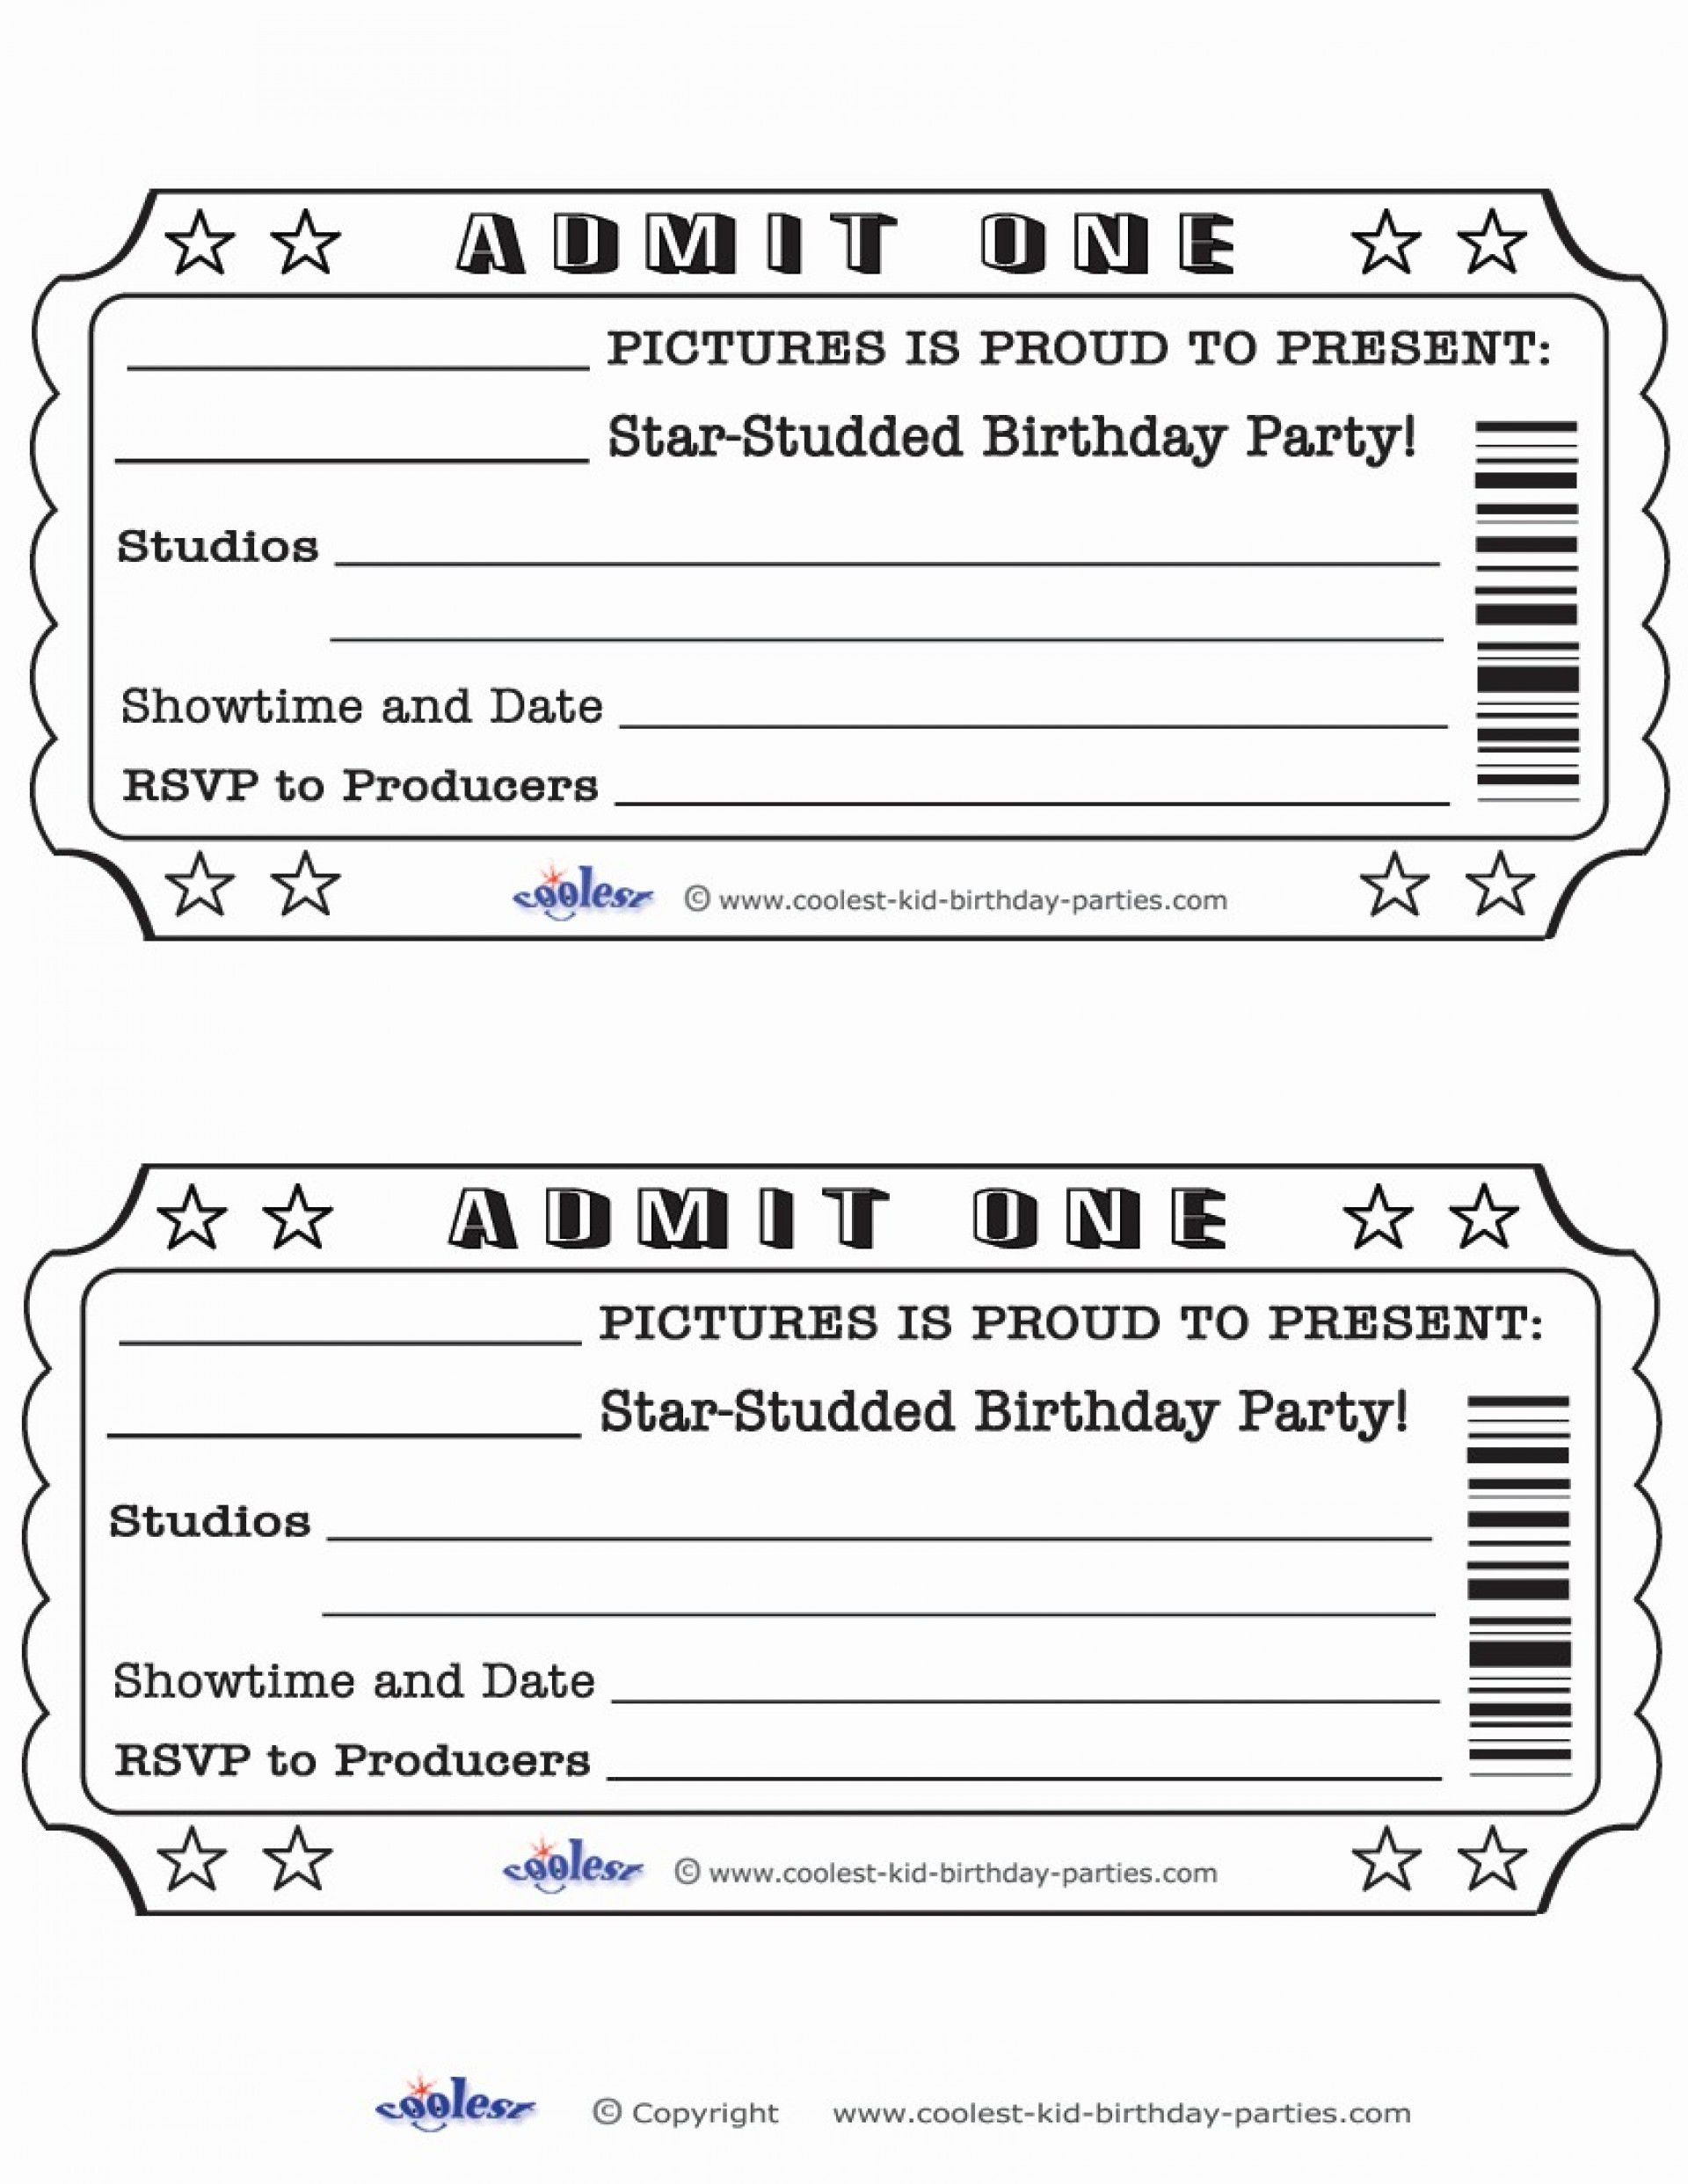 009 Remarkable Free Printable Ticket Template Example  Editable Airline Christma For Gift1920